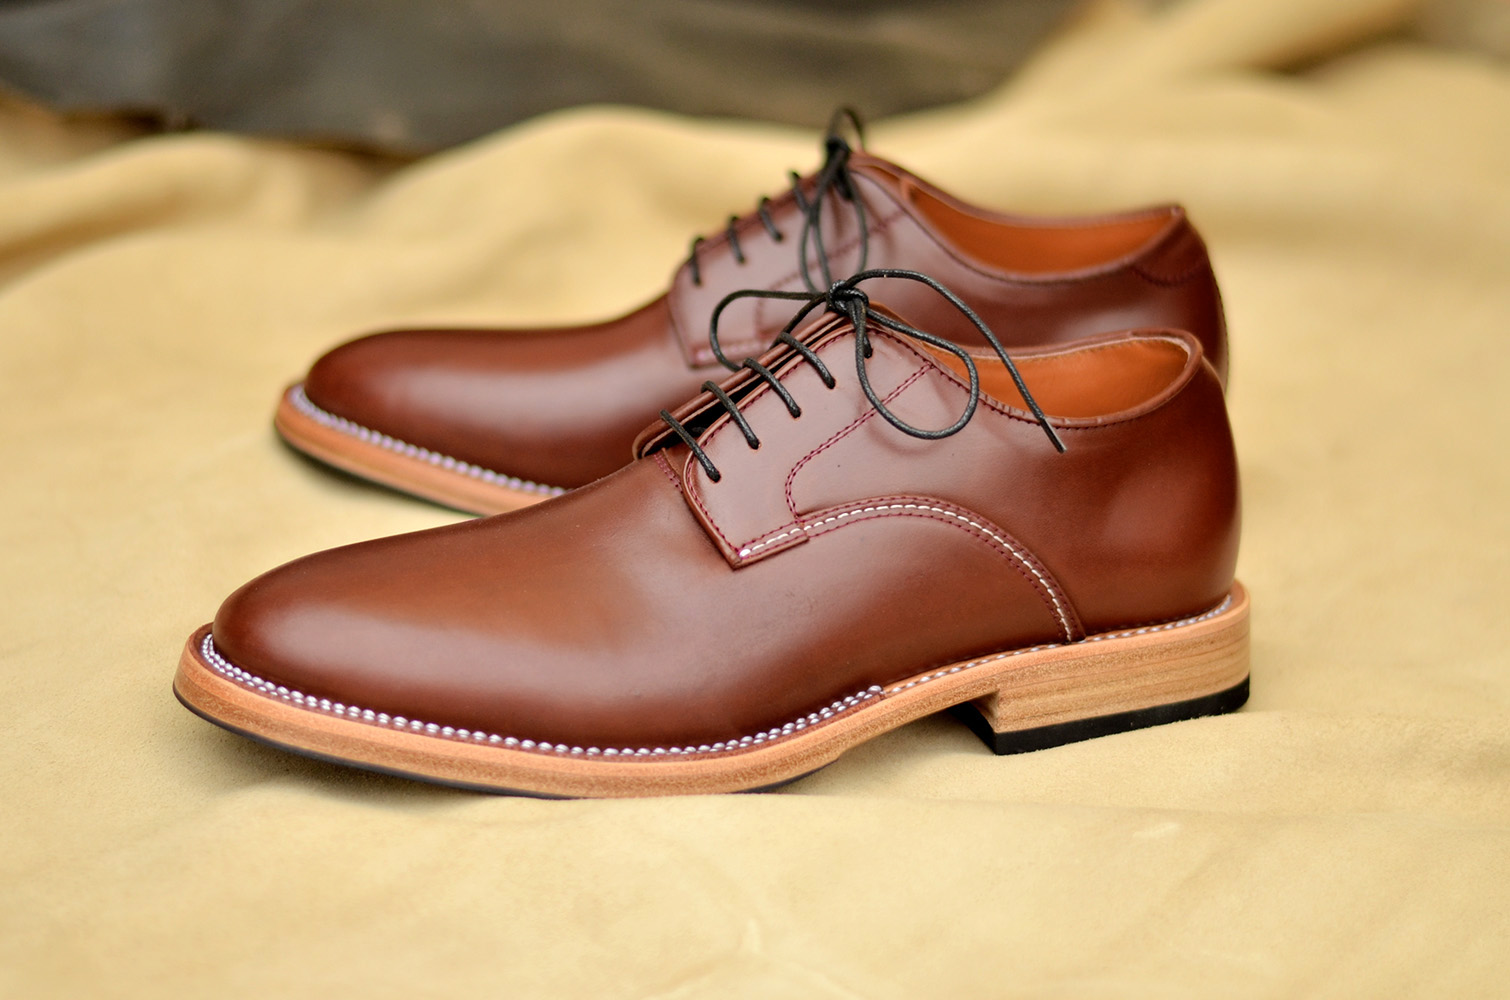 civil-shoes-in-oxblood